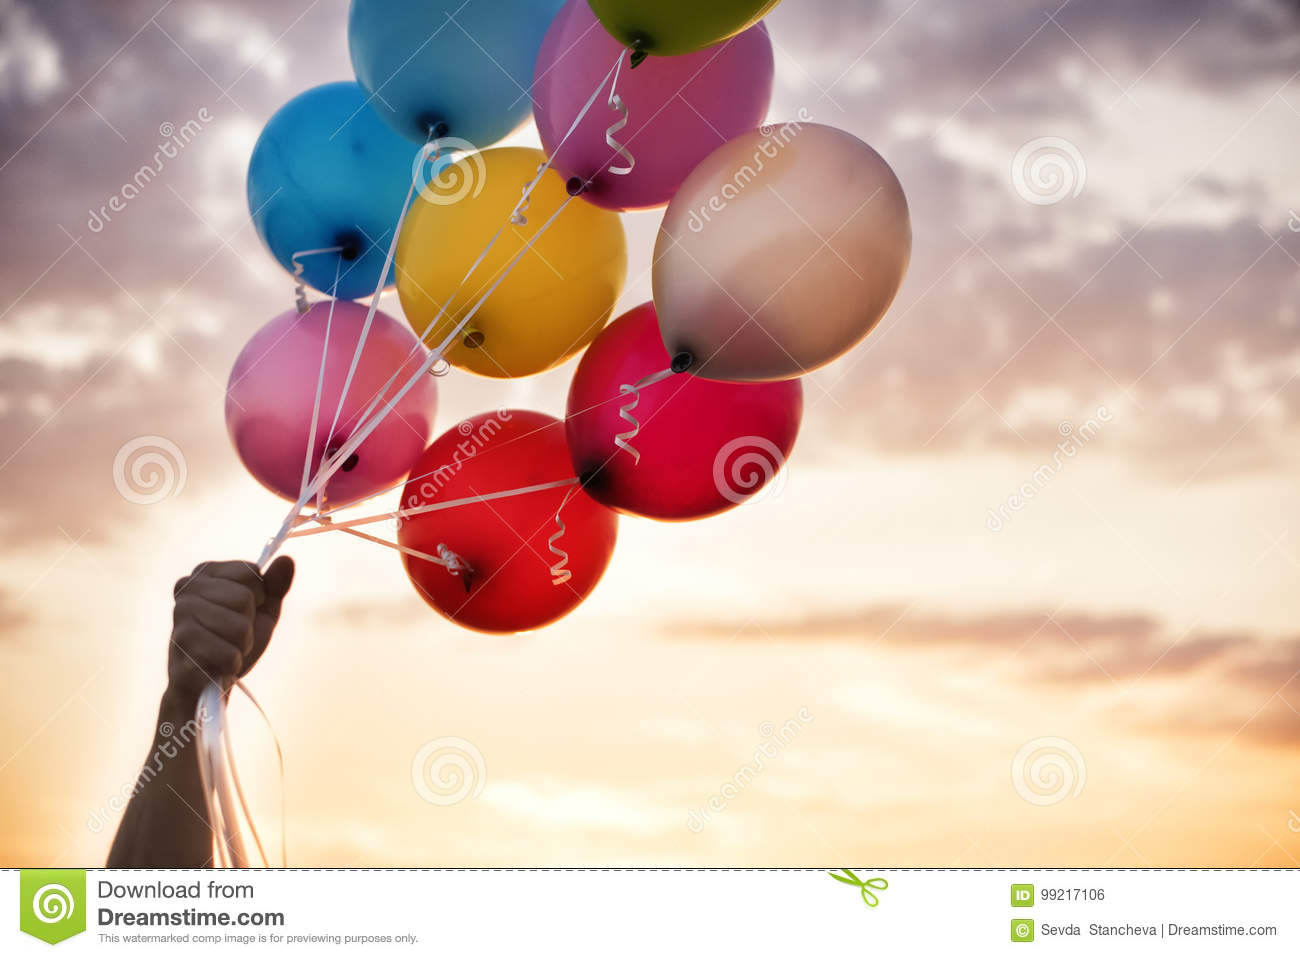 Man Hand Holding Colorful Balloons And A Beautiful Sunset Birthday Party Balloon